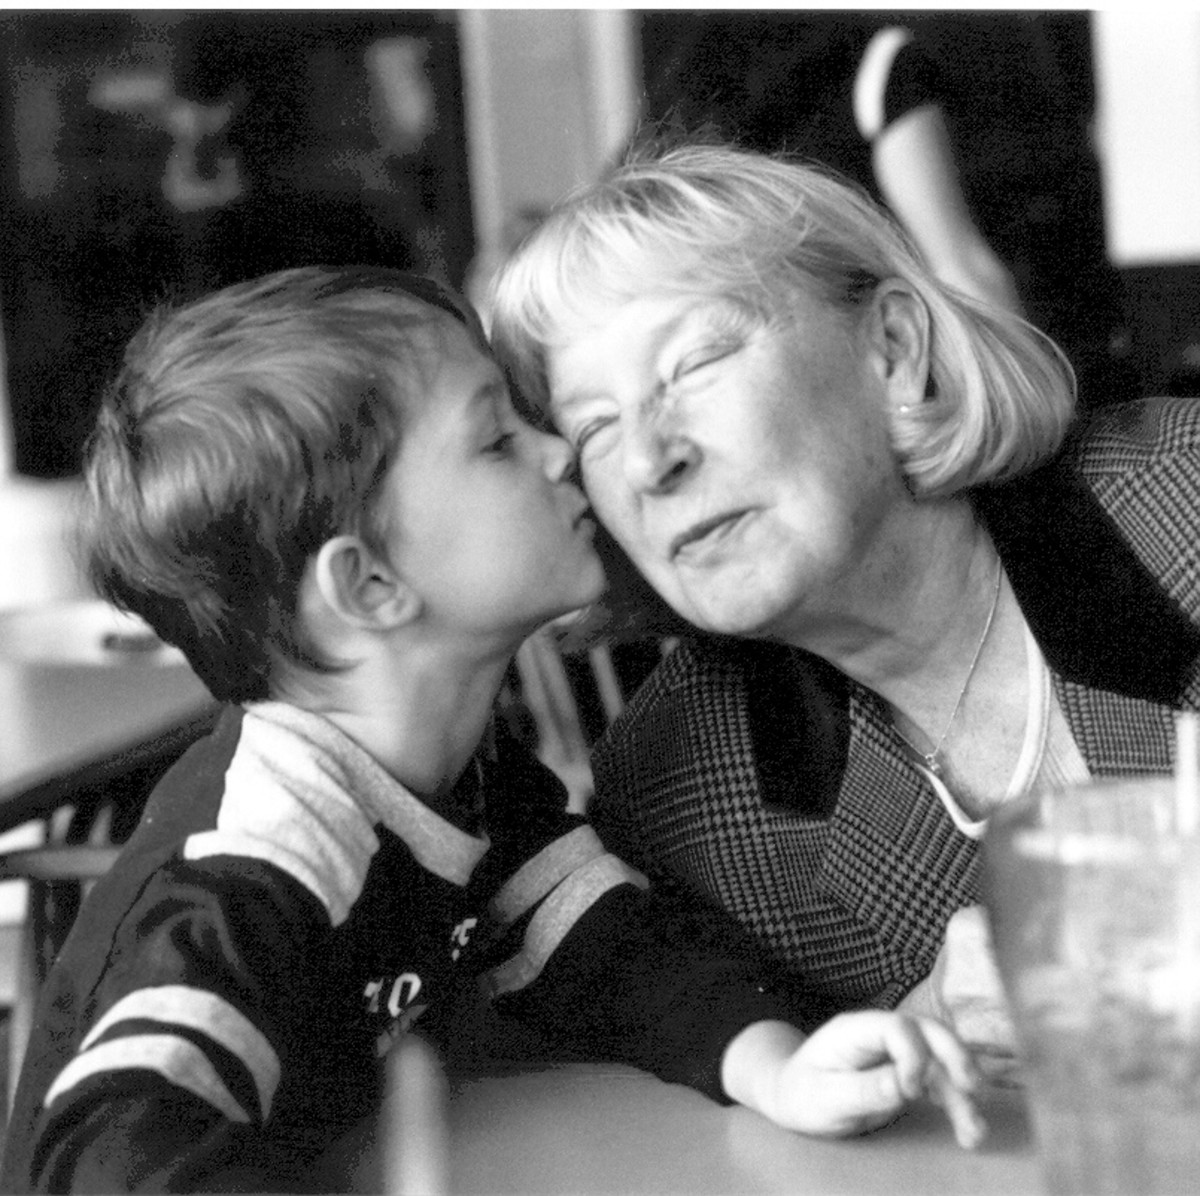 A grandparent to love and kiss on...